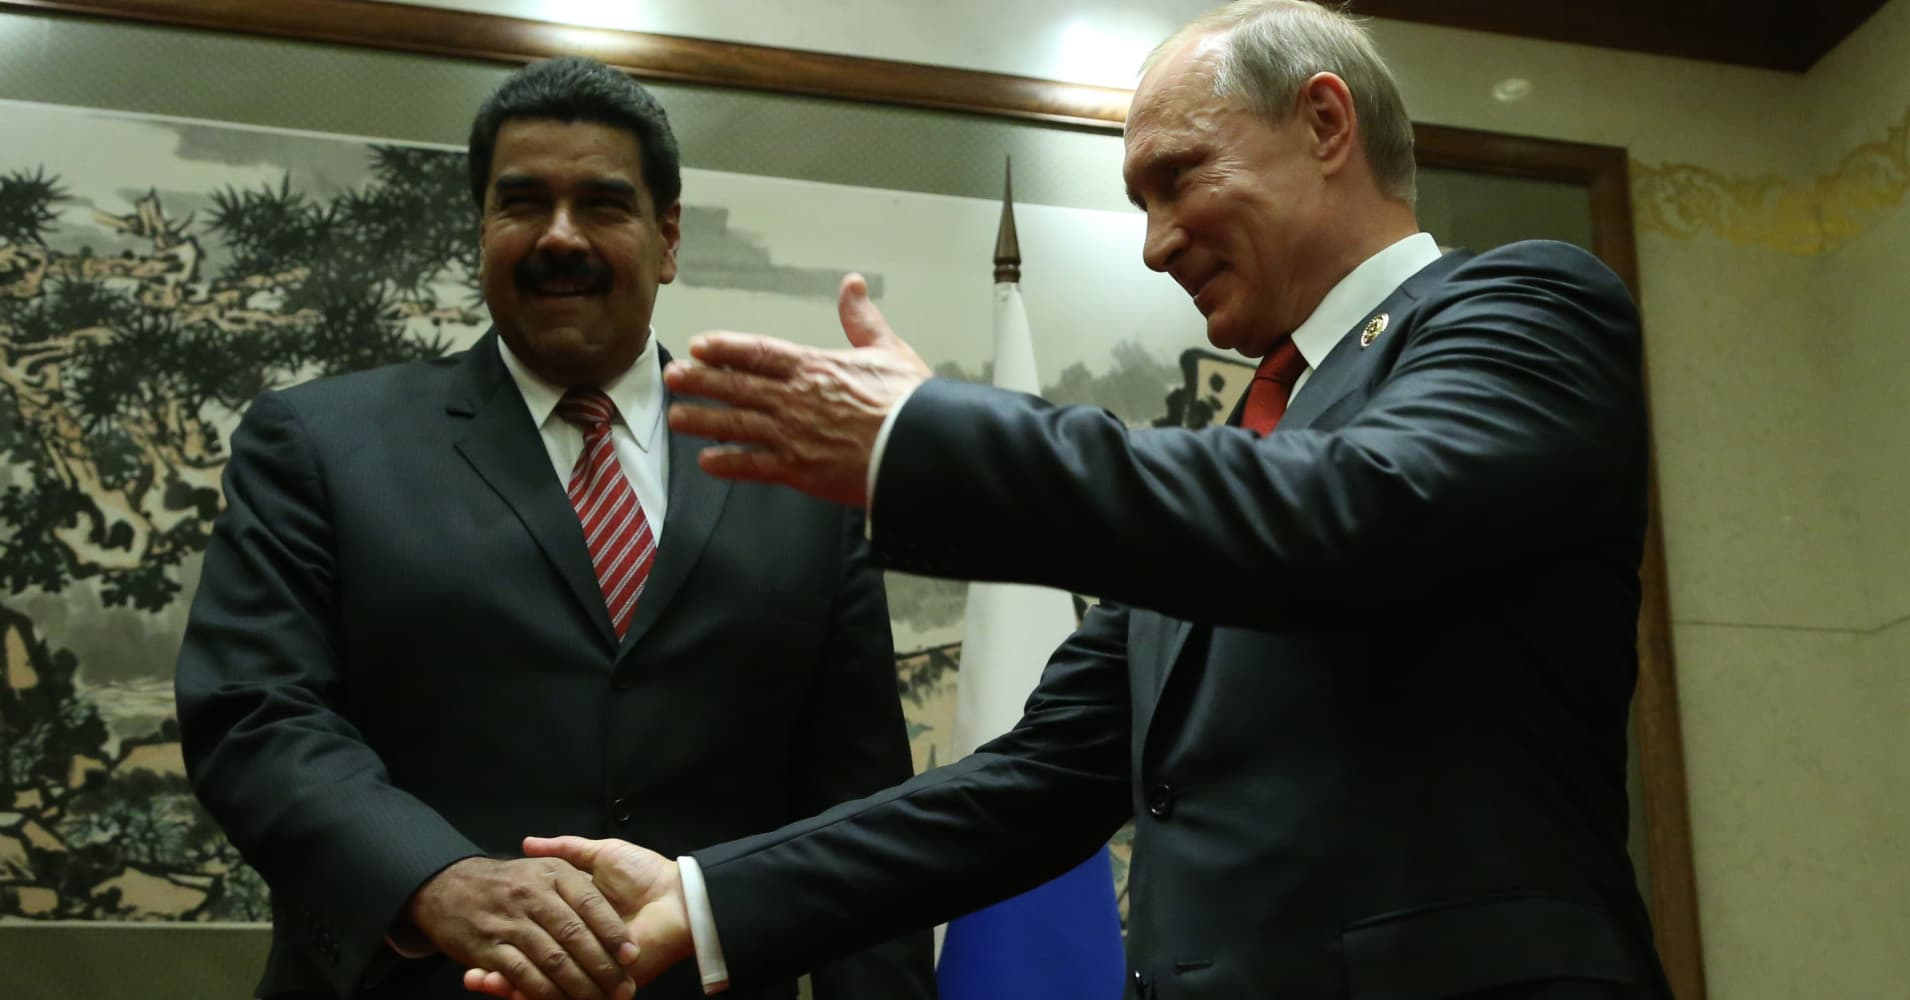 The US-Russia battle for influence over Venezuela is reminding people of Syria